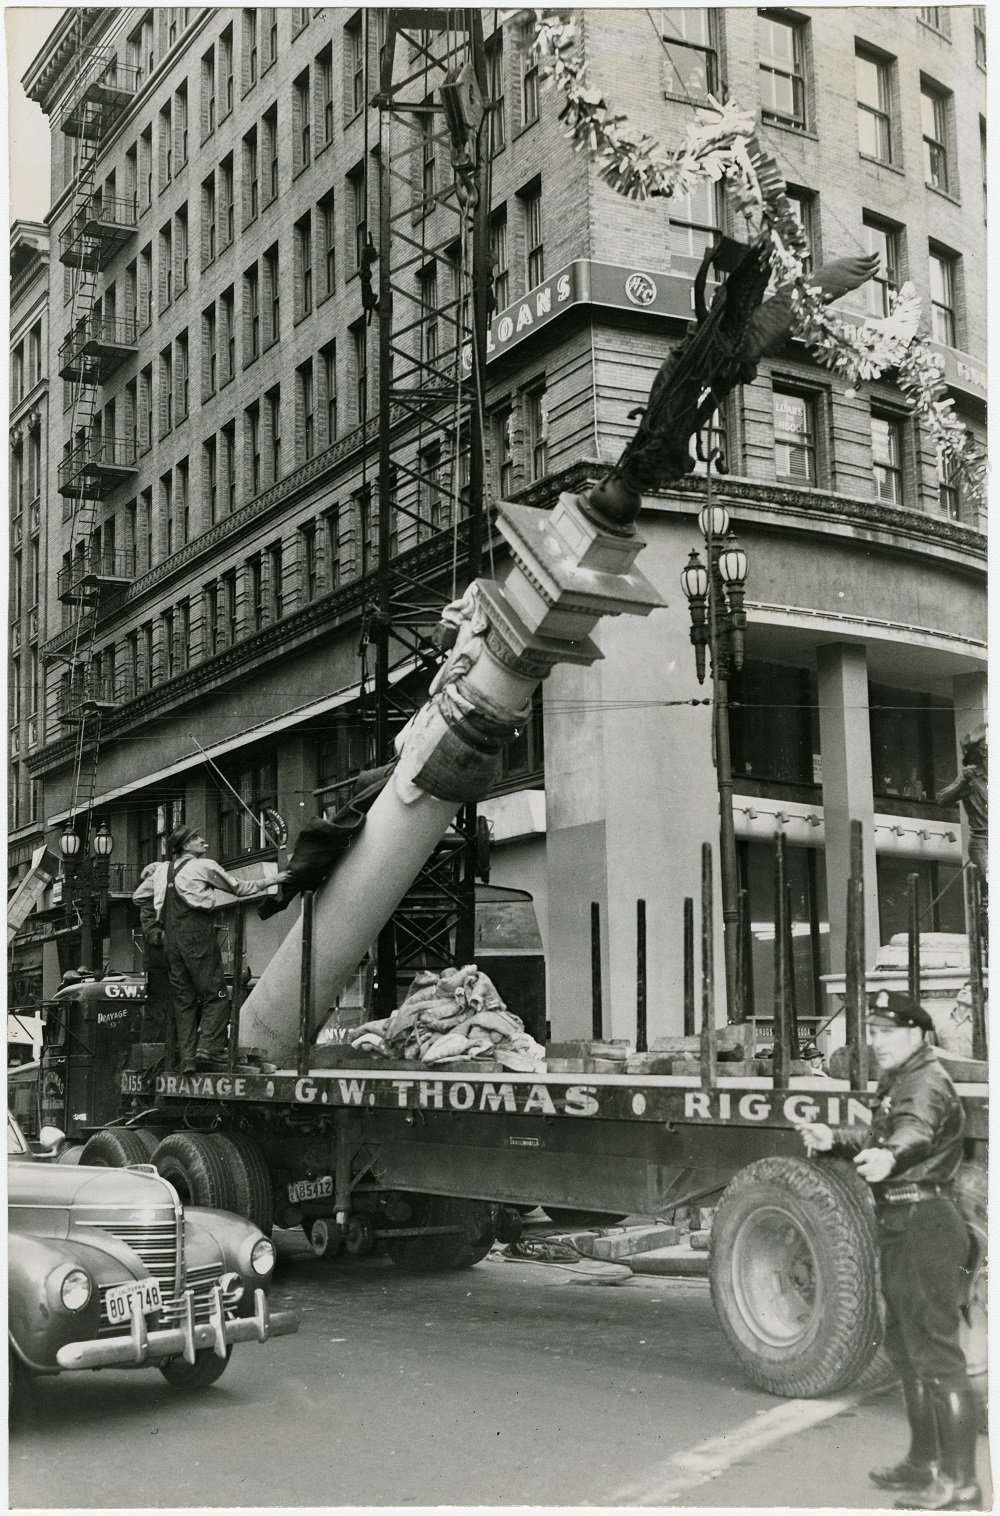 [Native Sons Statue being moved from Market, Turk and Mason streets to Golden Gate park]. December 29, 1948. Photo ID #AAA-9489. SAN FRANCISCO HISTORY CENTER, SAN FRANCISCO PUBLIC LIBRARY.